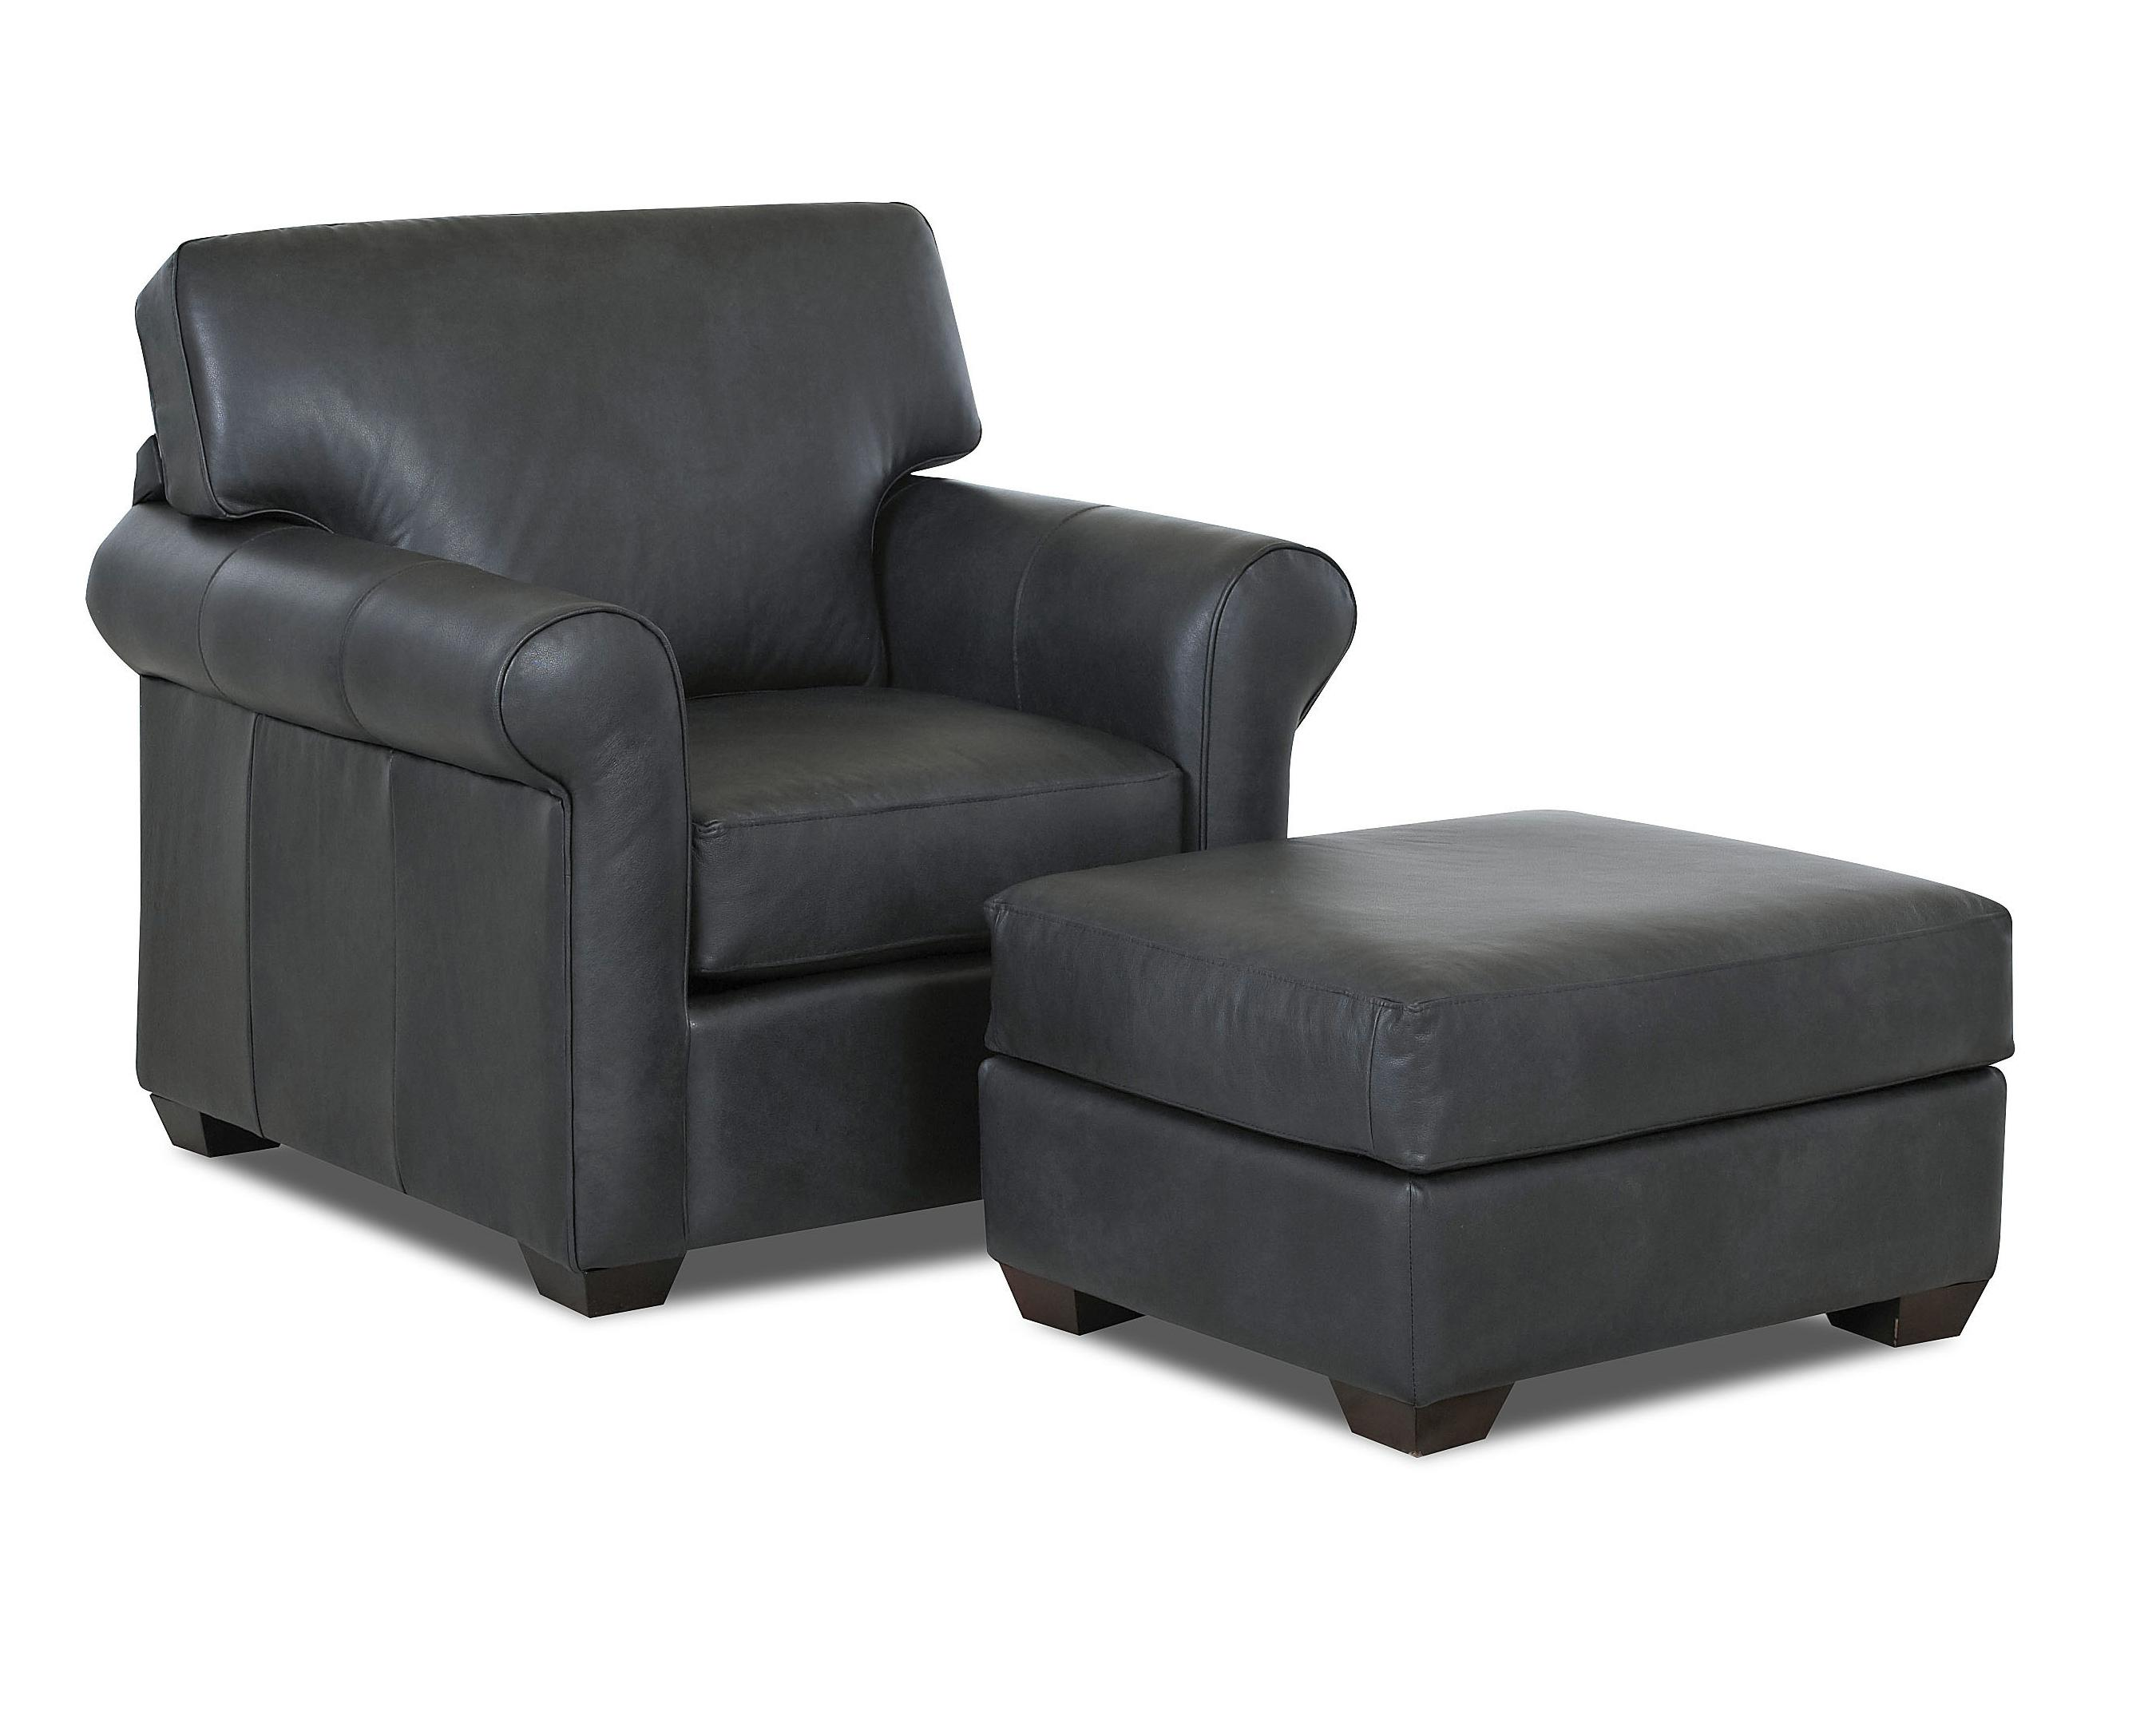 Canoy Transitional Chair and Ottoman Set by Klaussner at Johnny Janosik